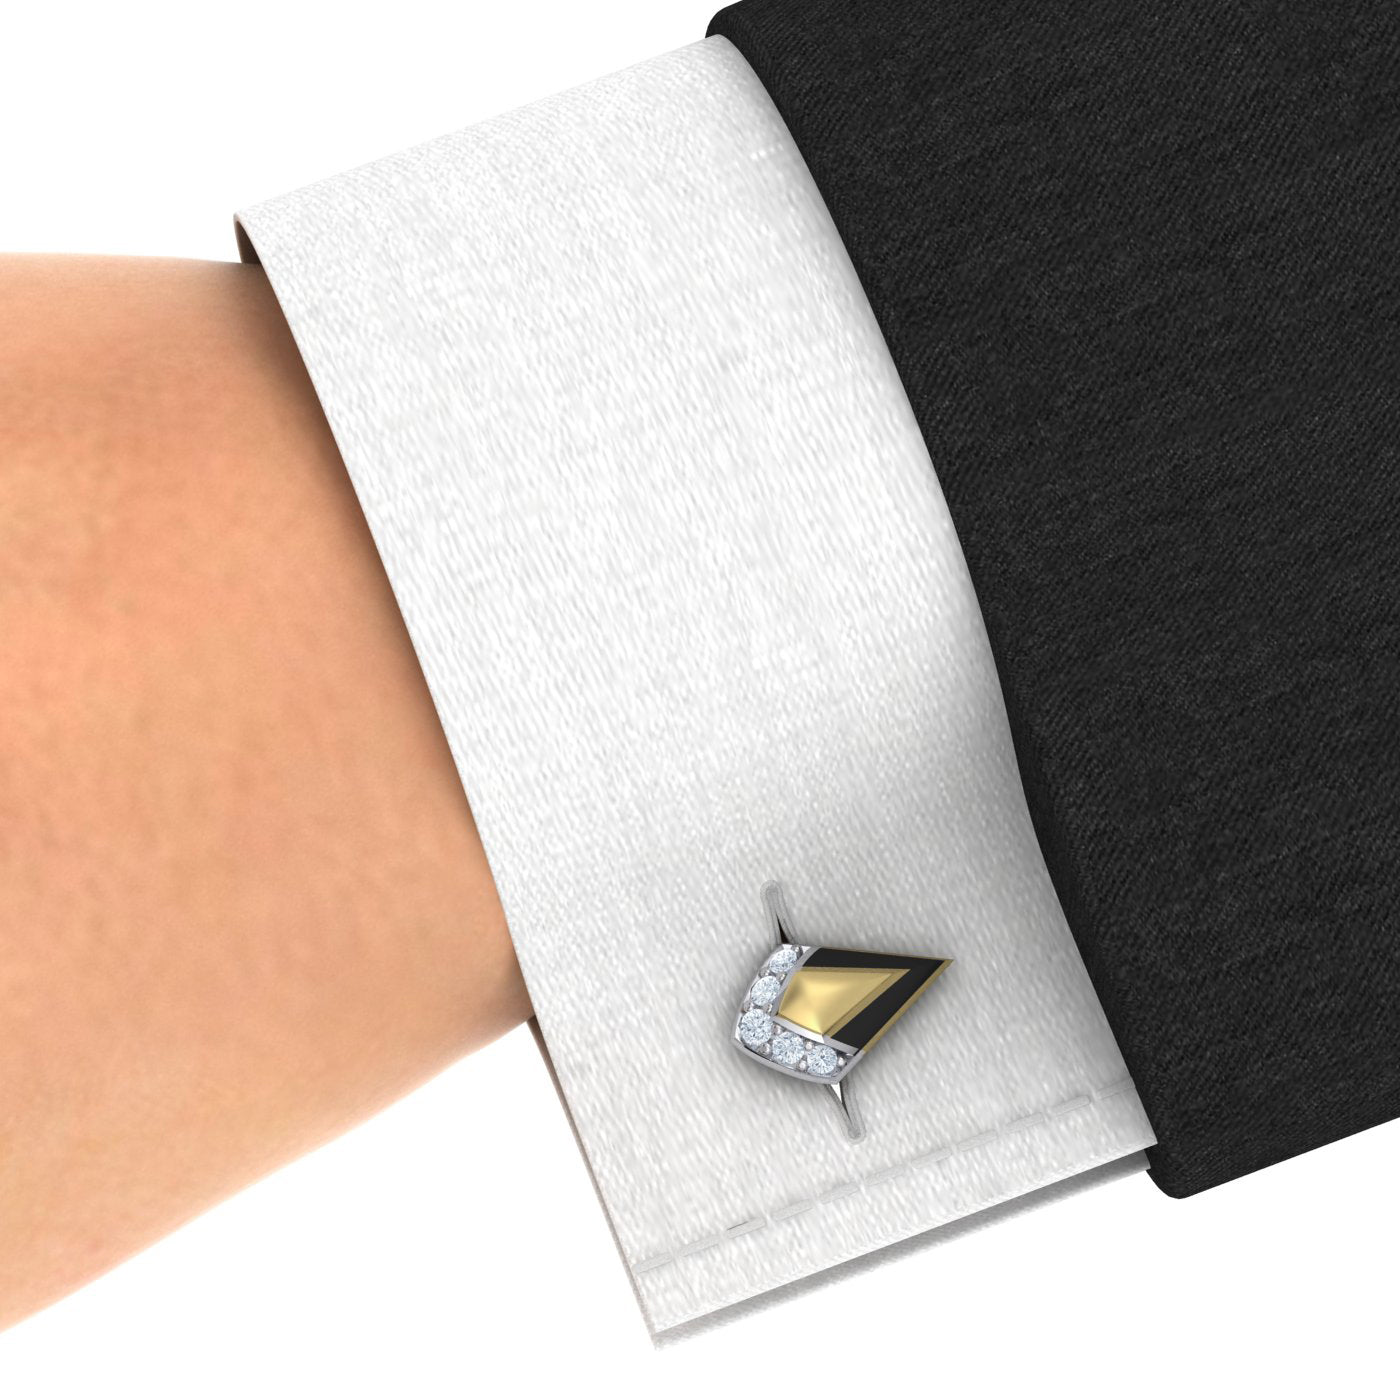 Gold and Diamond Cufflinks by Alice Herald